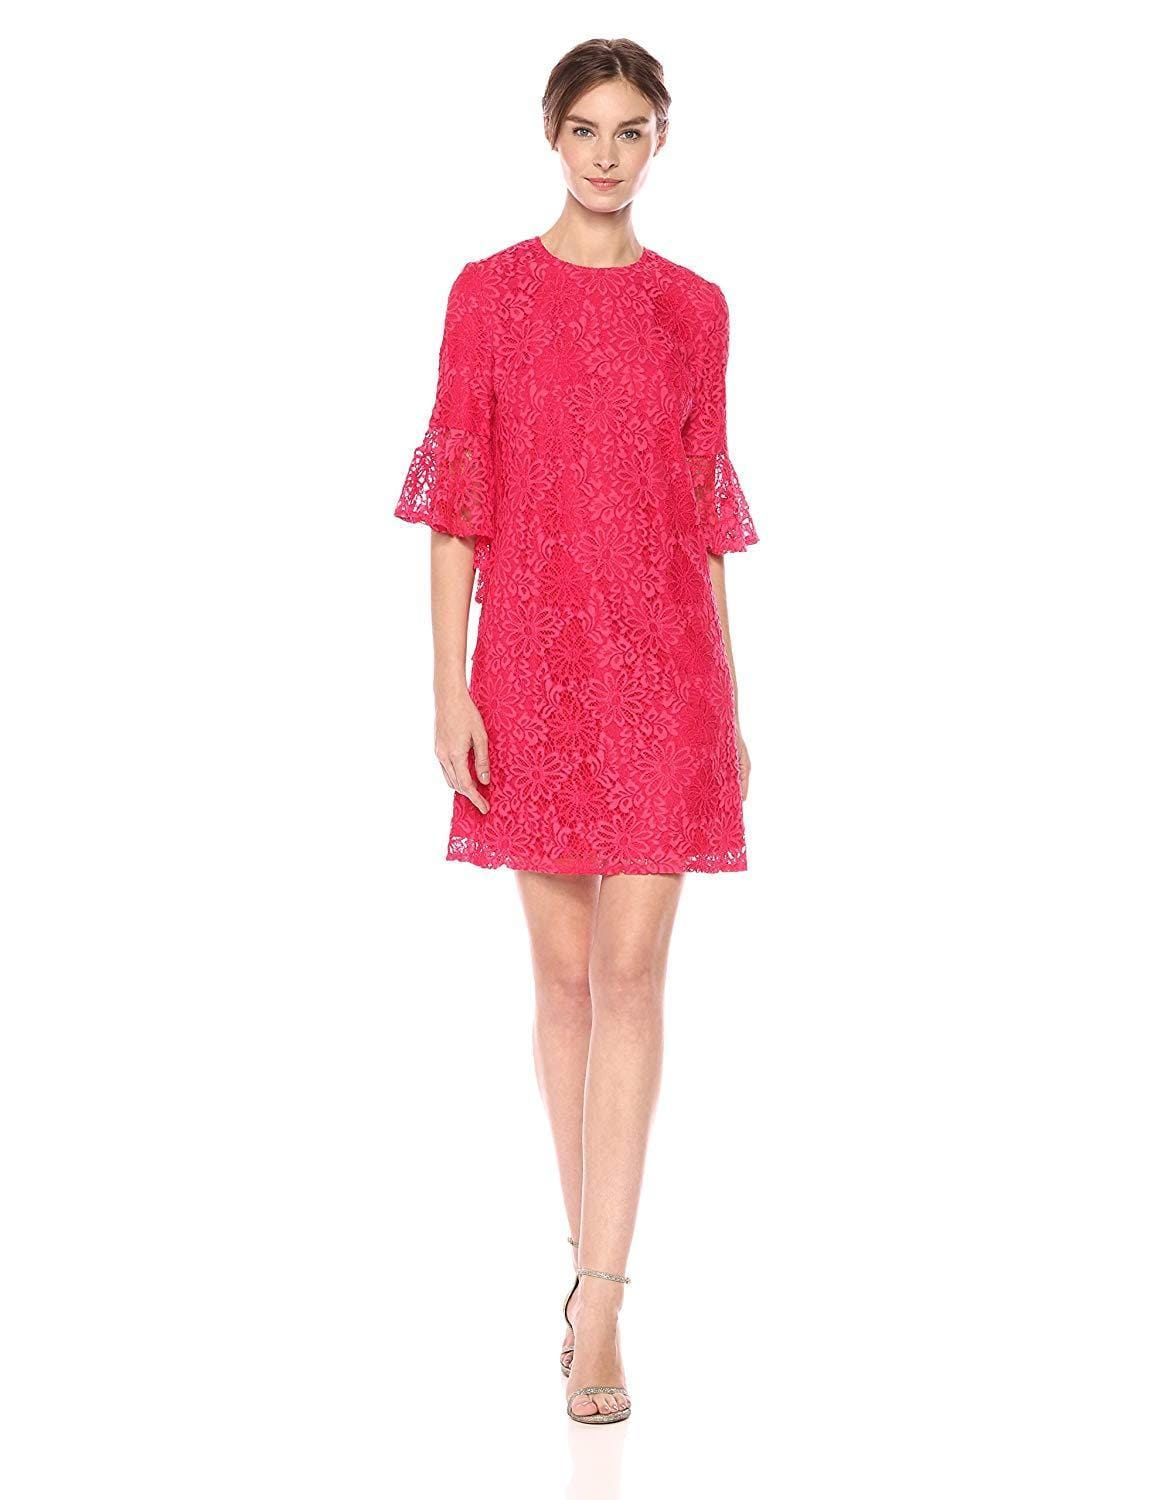 Nanette Nanette Lepore - ND8S10S99 Bell Sleeve Lace Shift Dress In Red